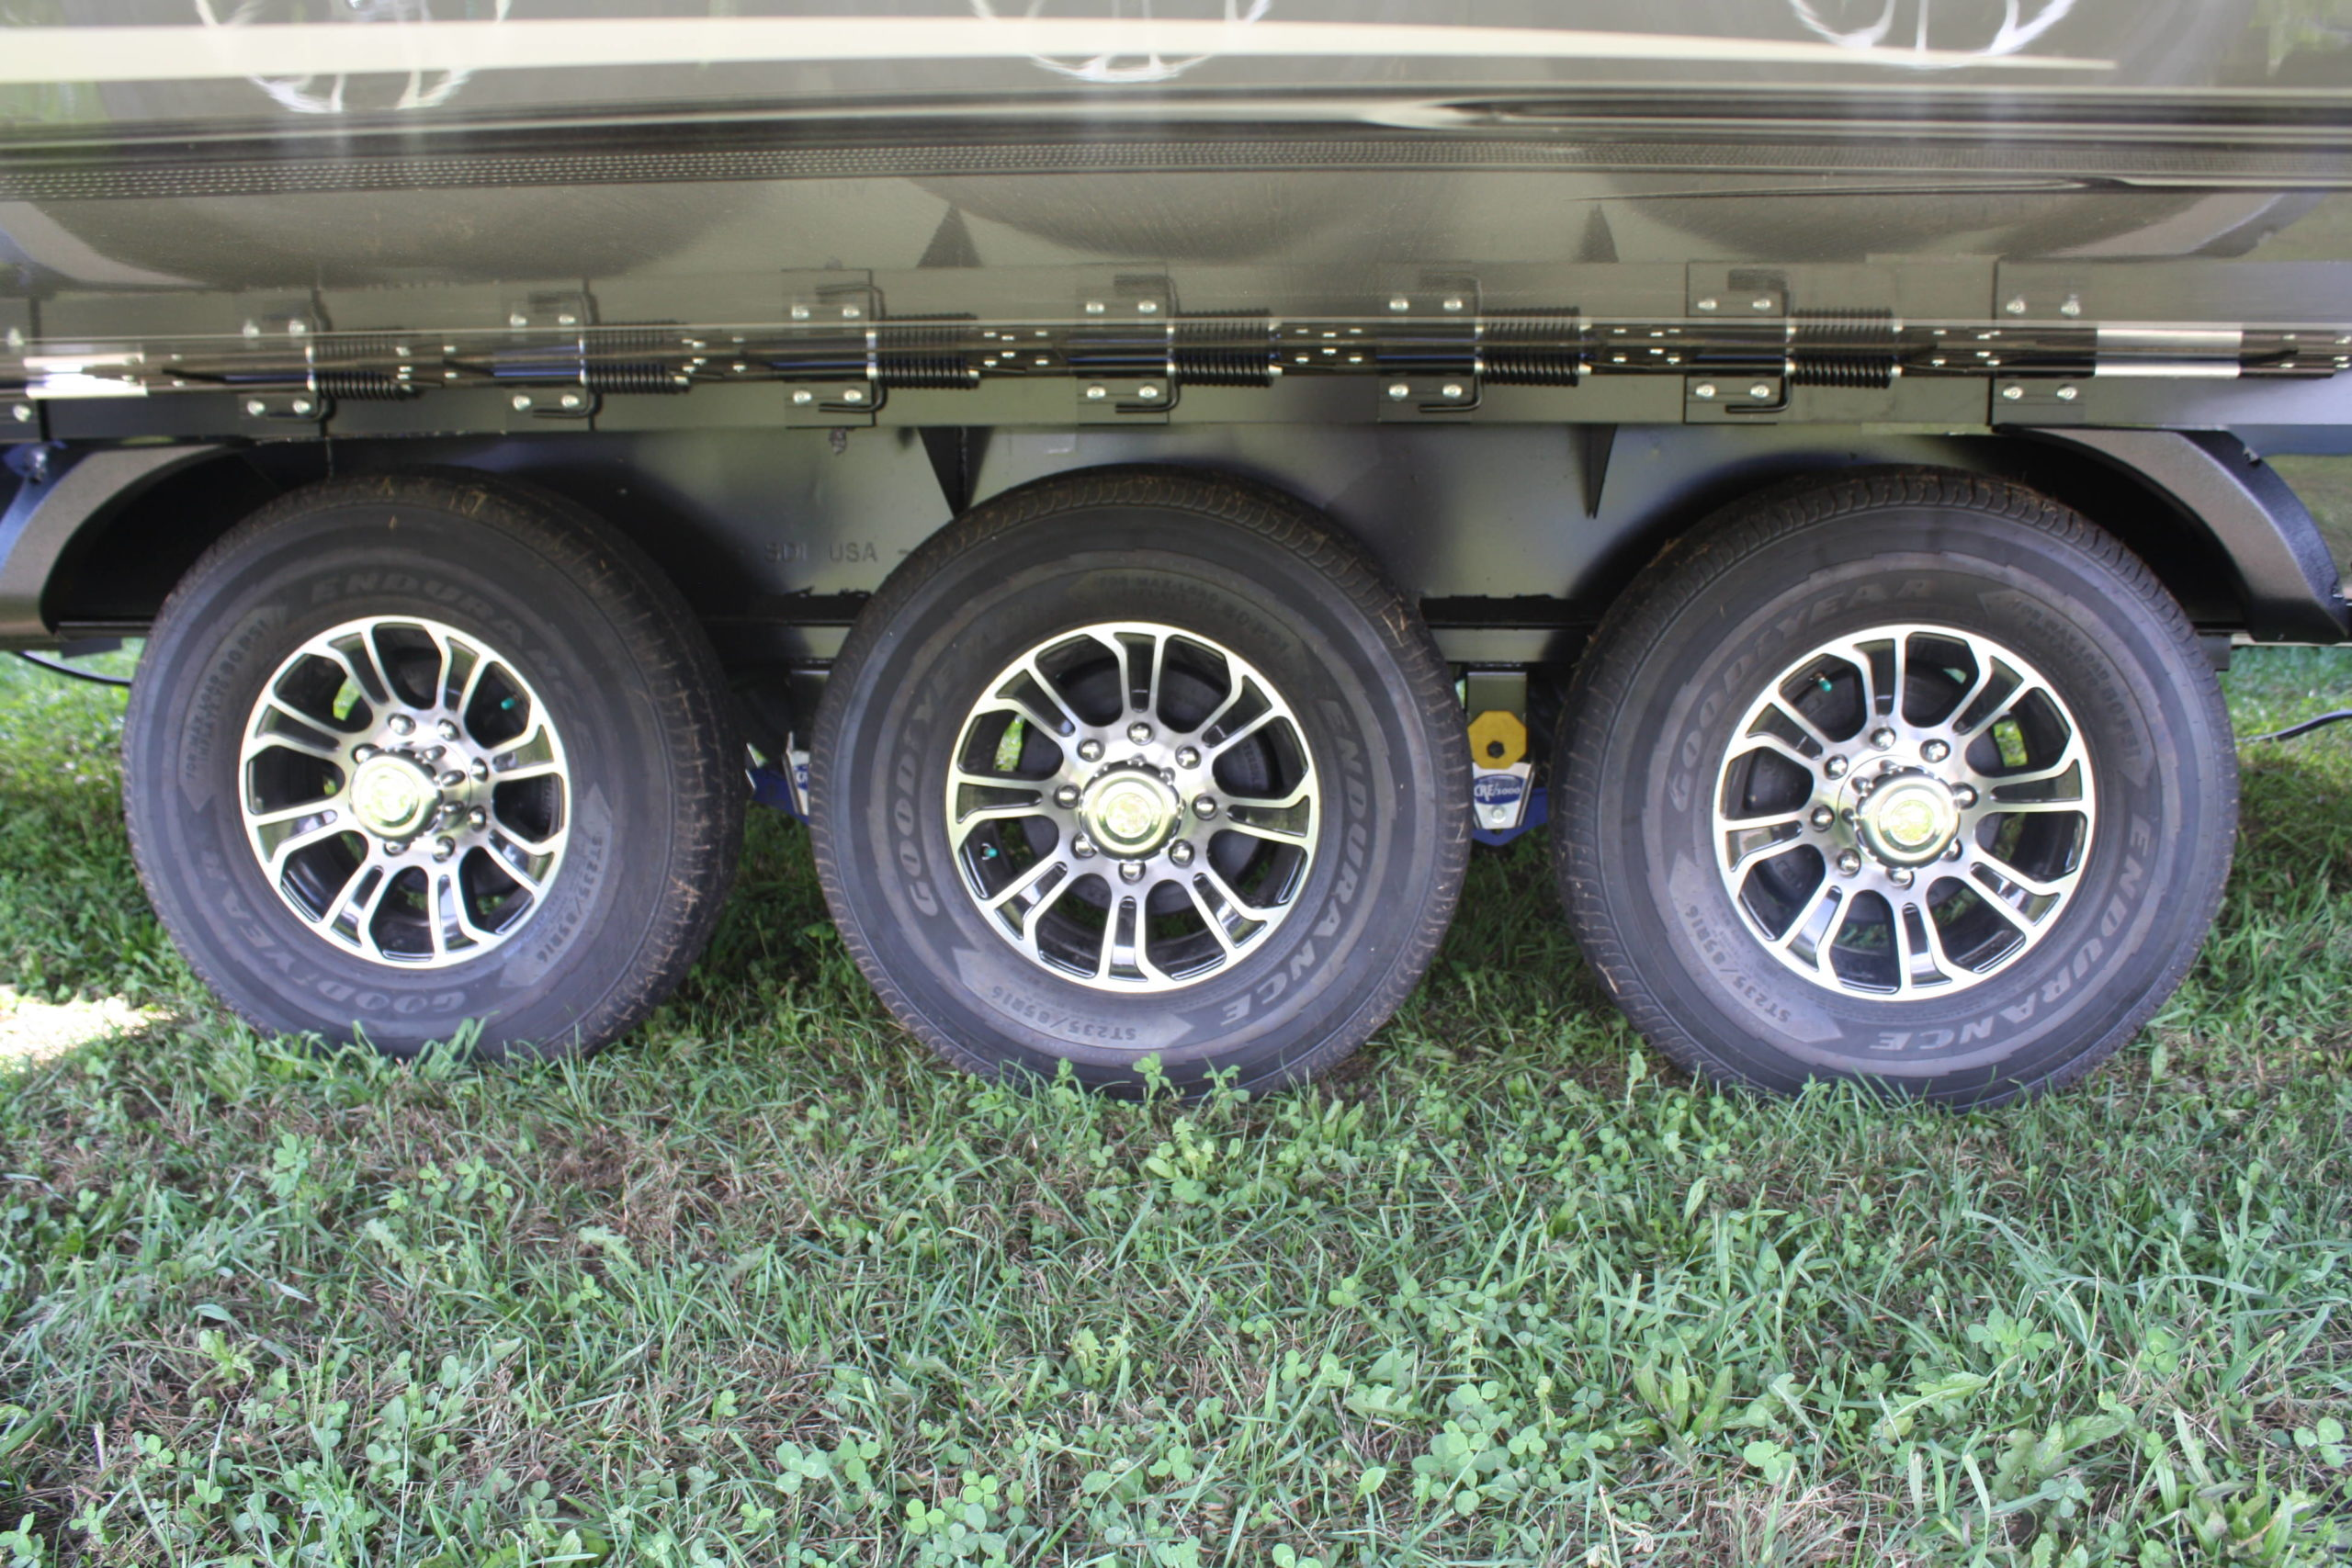 The new 2017 Jayco Seismic fifth when sports three Goodyear made-in-the-U.S.A. Endurance ST tires on each side of its chassis.